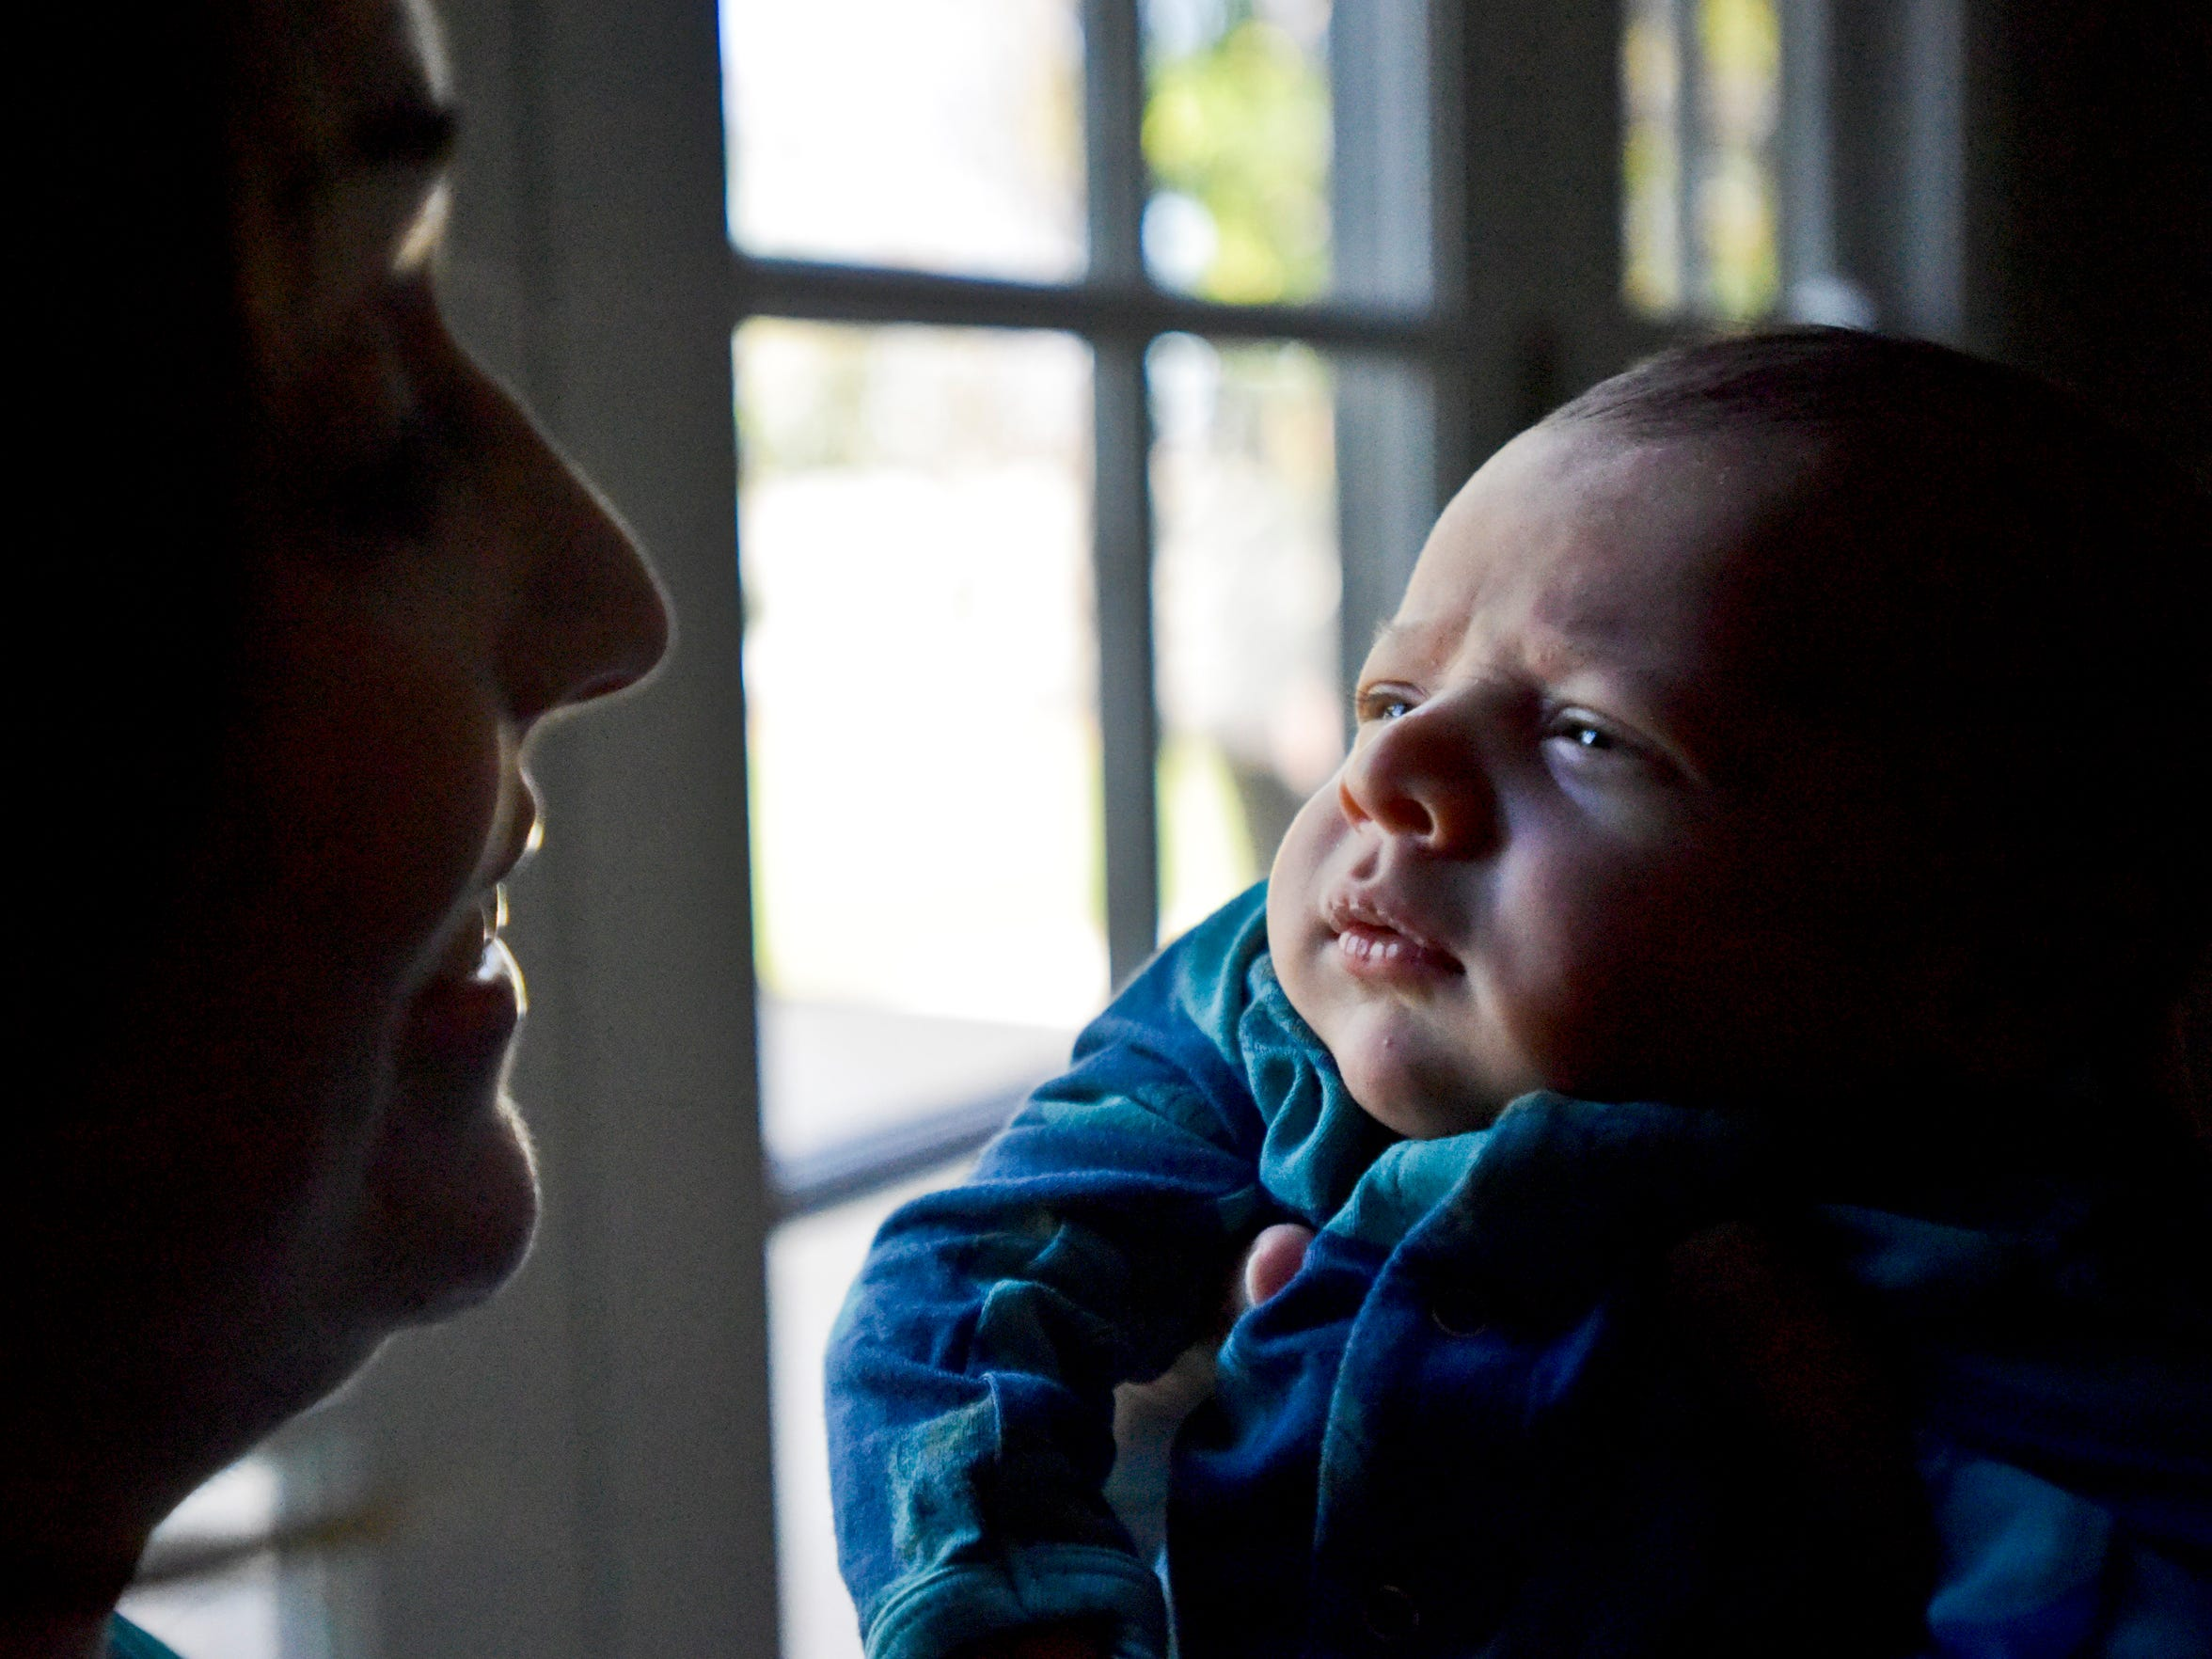 Dr. Tanya Altmann, left, holds her newborn son, Maxton, right, at their home in California. She's afraid to take him outside these days because of the measles outbreak.